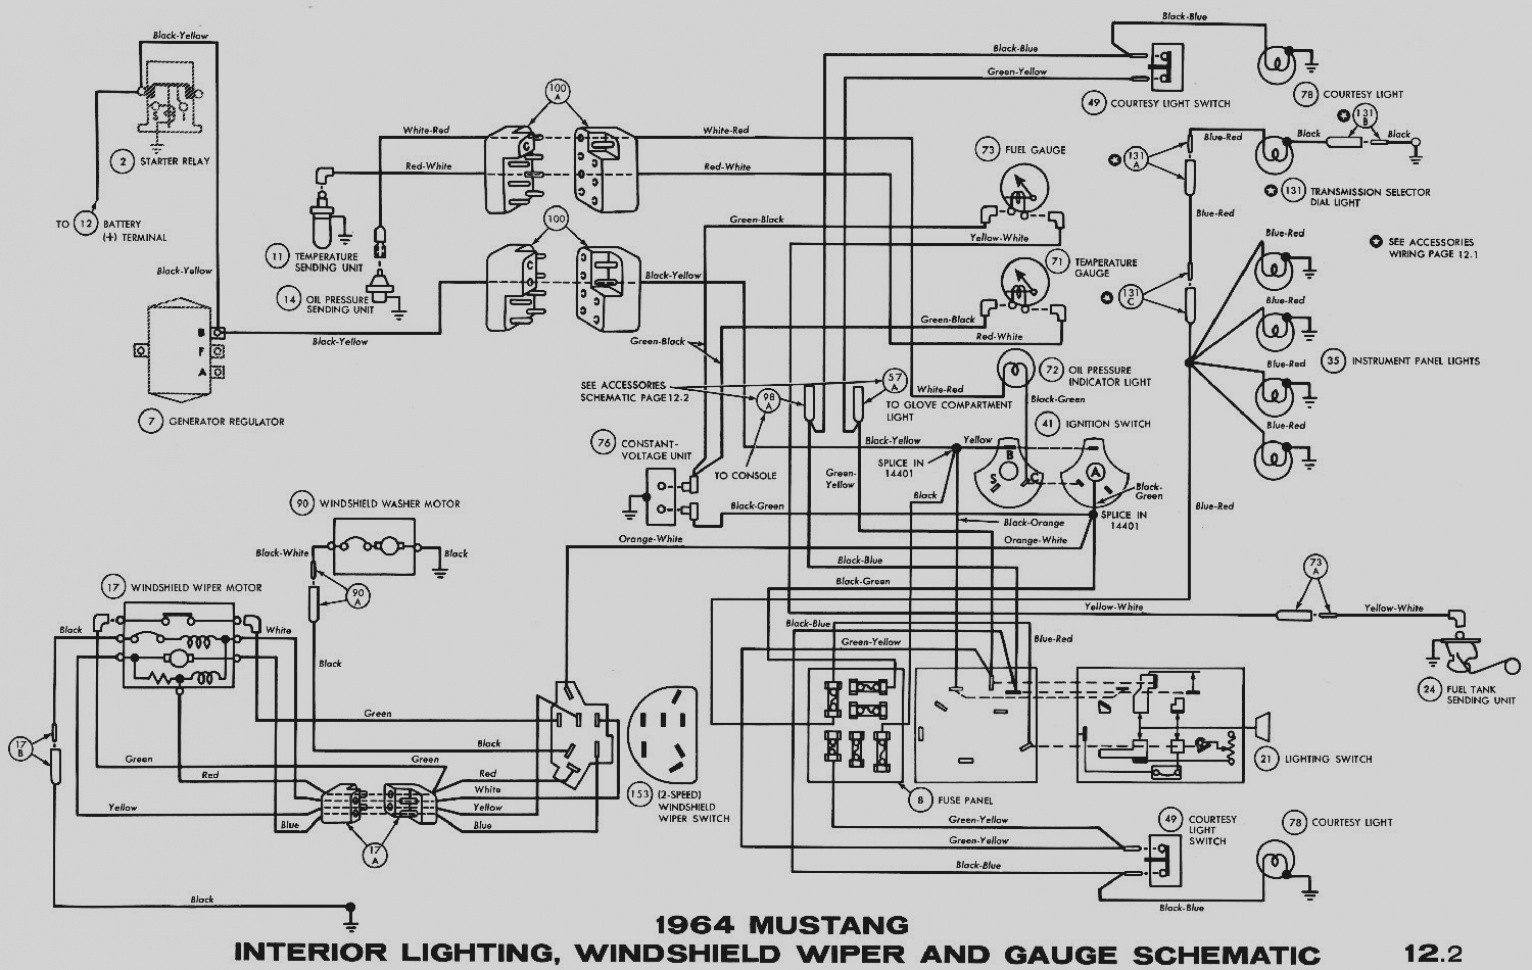 19711978 Dodge Manual Transmission Three Speed Diagramjpg